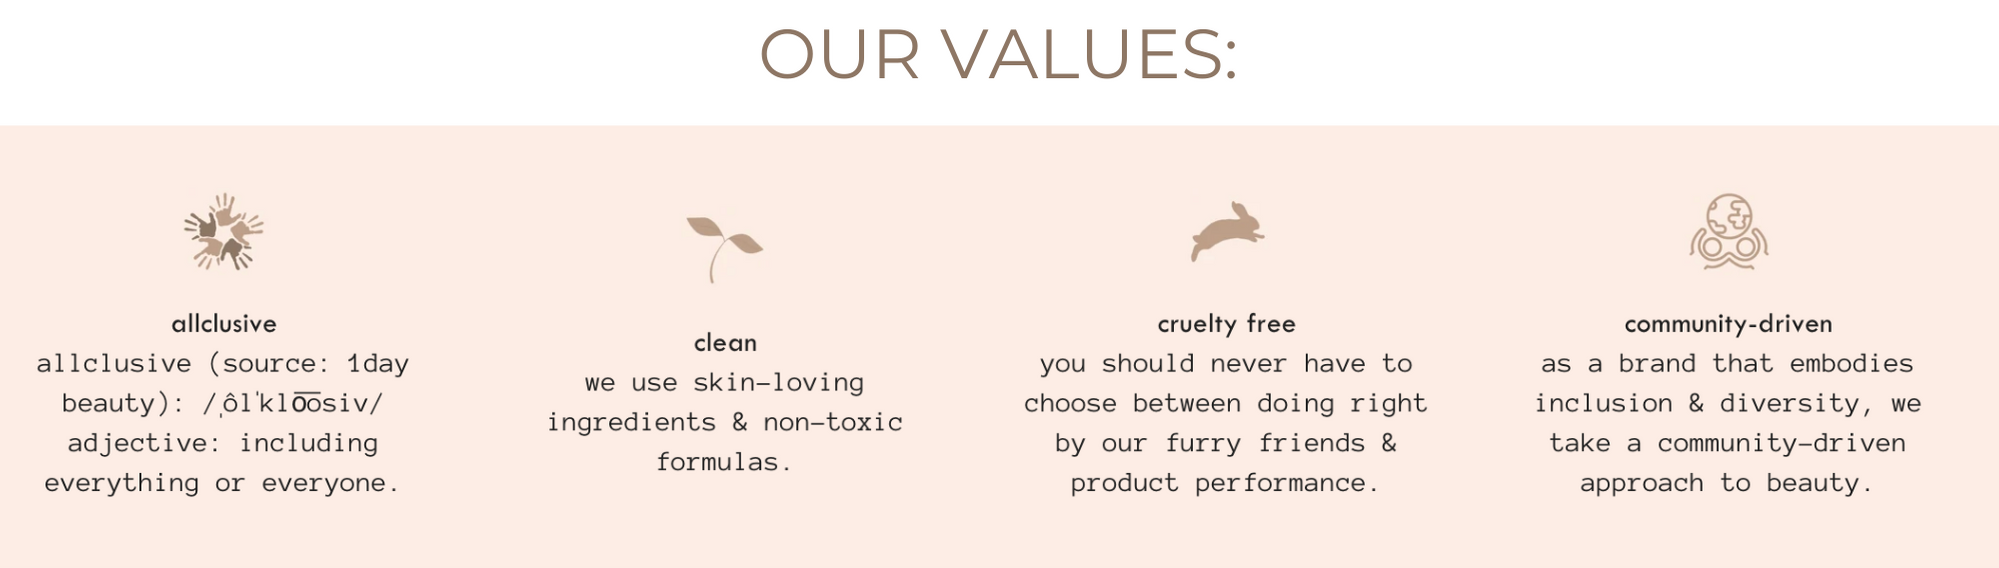 our values: allclusive, clean, cruelty-free, community driven